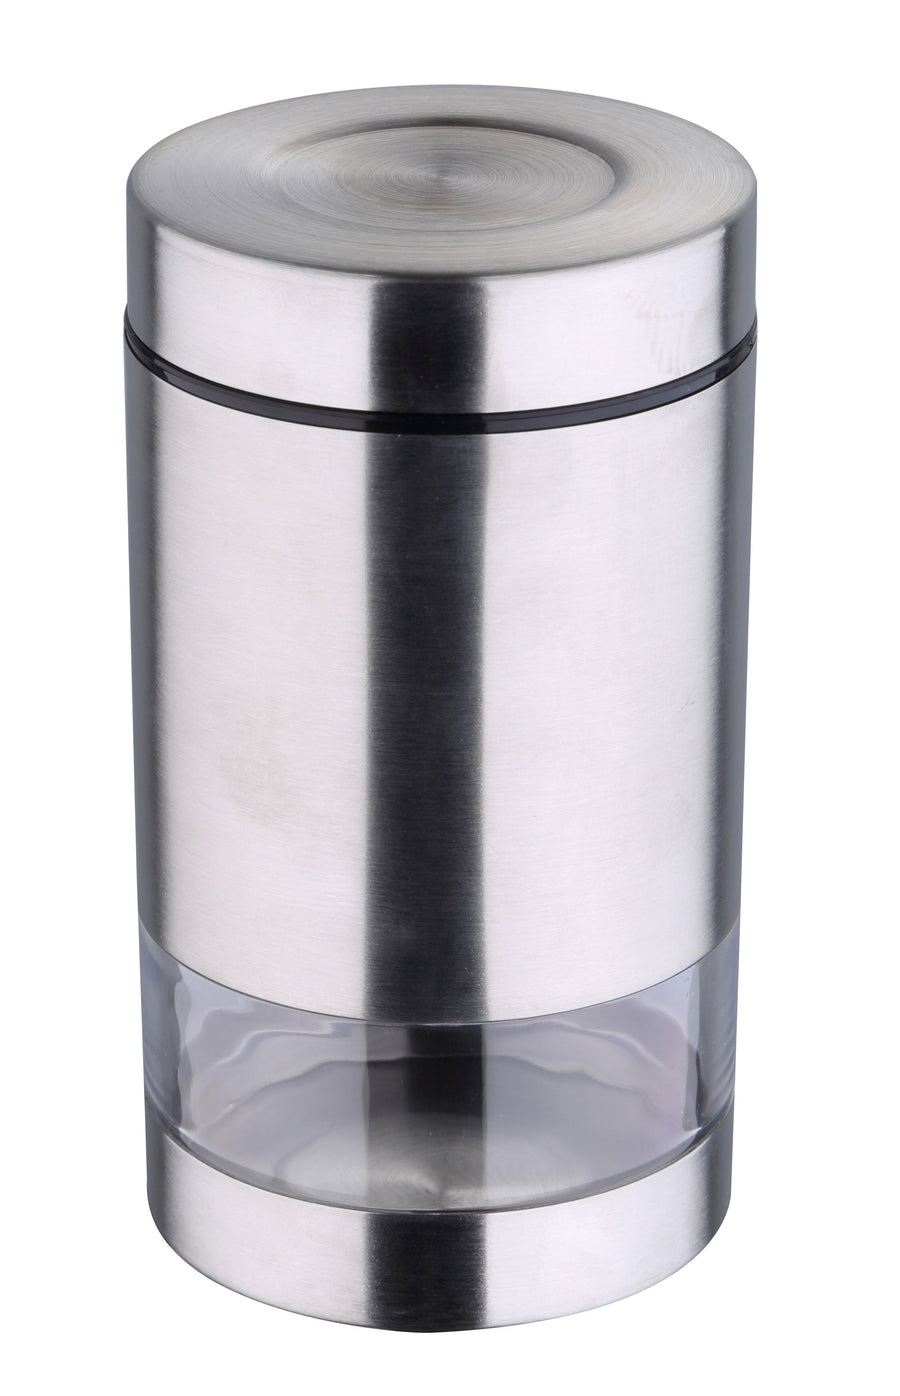 Canister 950 ml Stainless Steel (Silver)